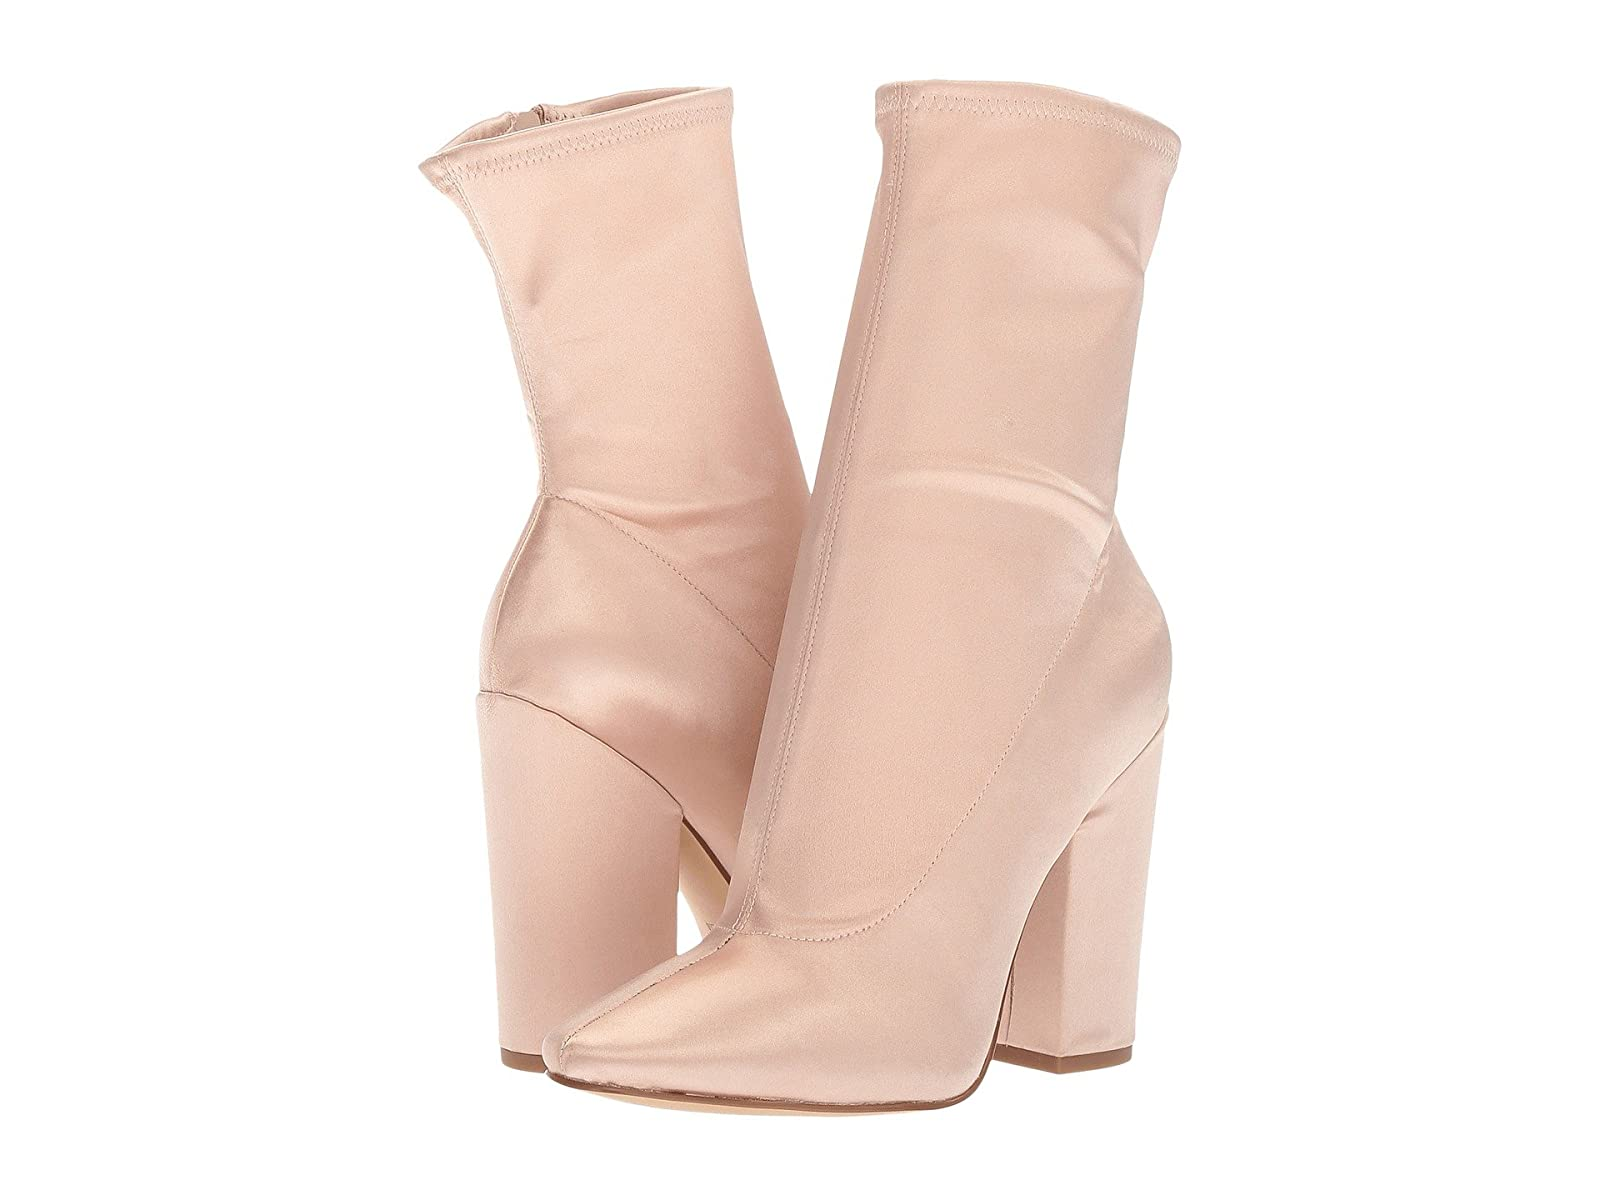 KENDALL + KYLIE HaileyCheap and distinctive eye-catching shoes